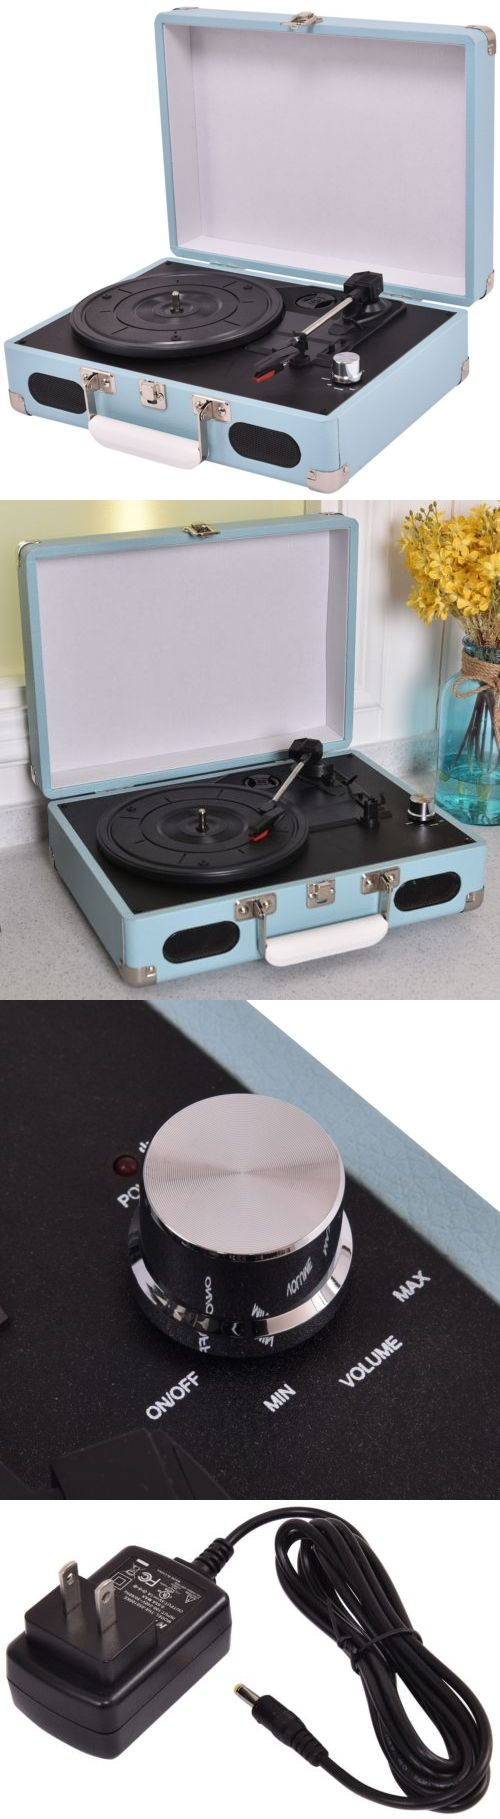 Other Vintage A V Parts and Accs: Vintage Vinyl Record Player Portable Built In Speakers Turntable Stylus New BUY IT NOW ONLY: $73.99